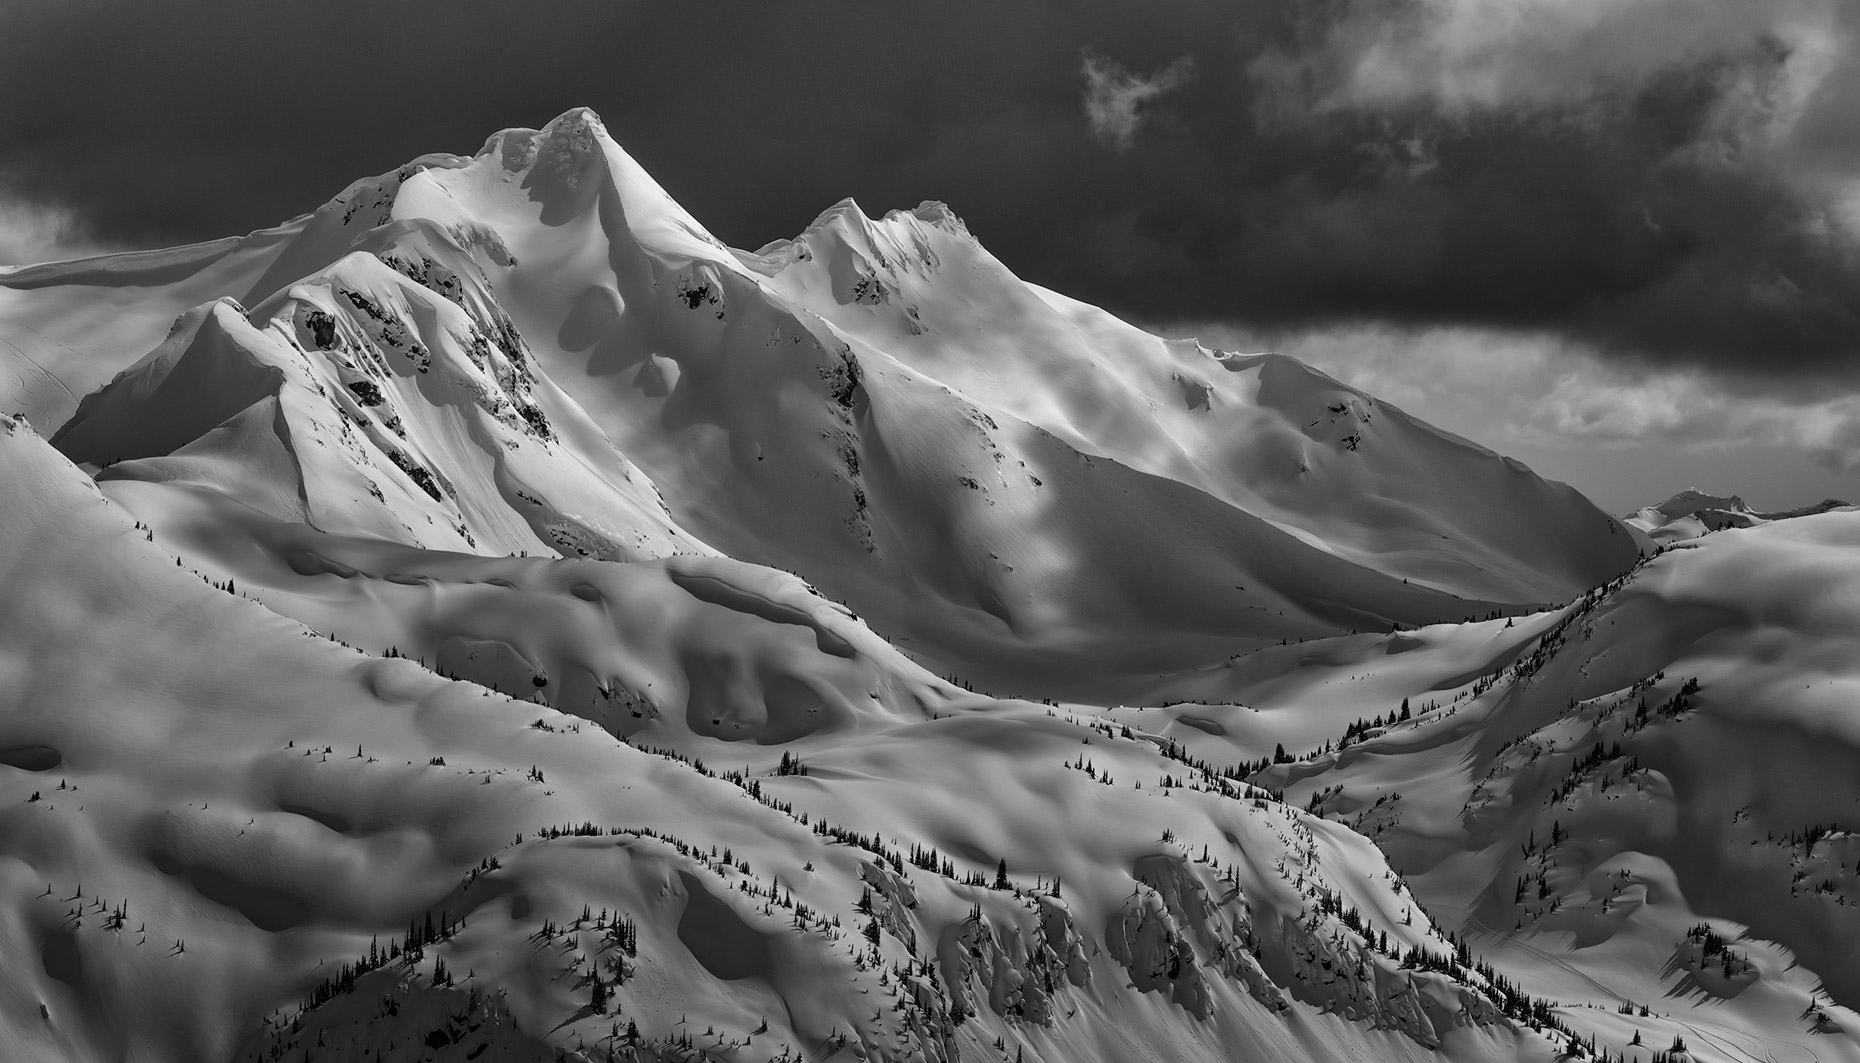 pemberton_backcountry_jussi_grznar-0113685-BW-copy